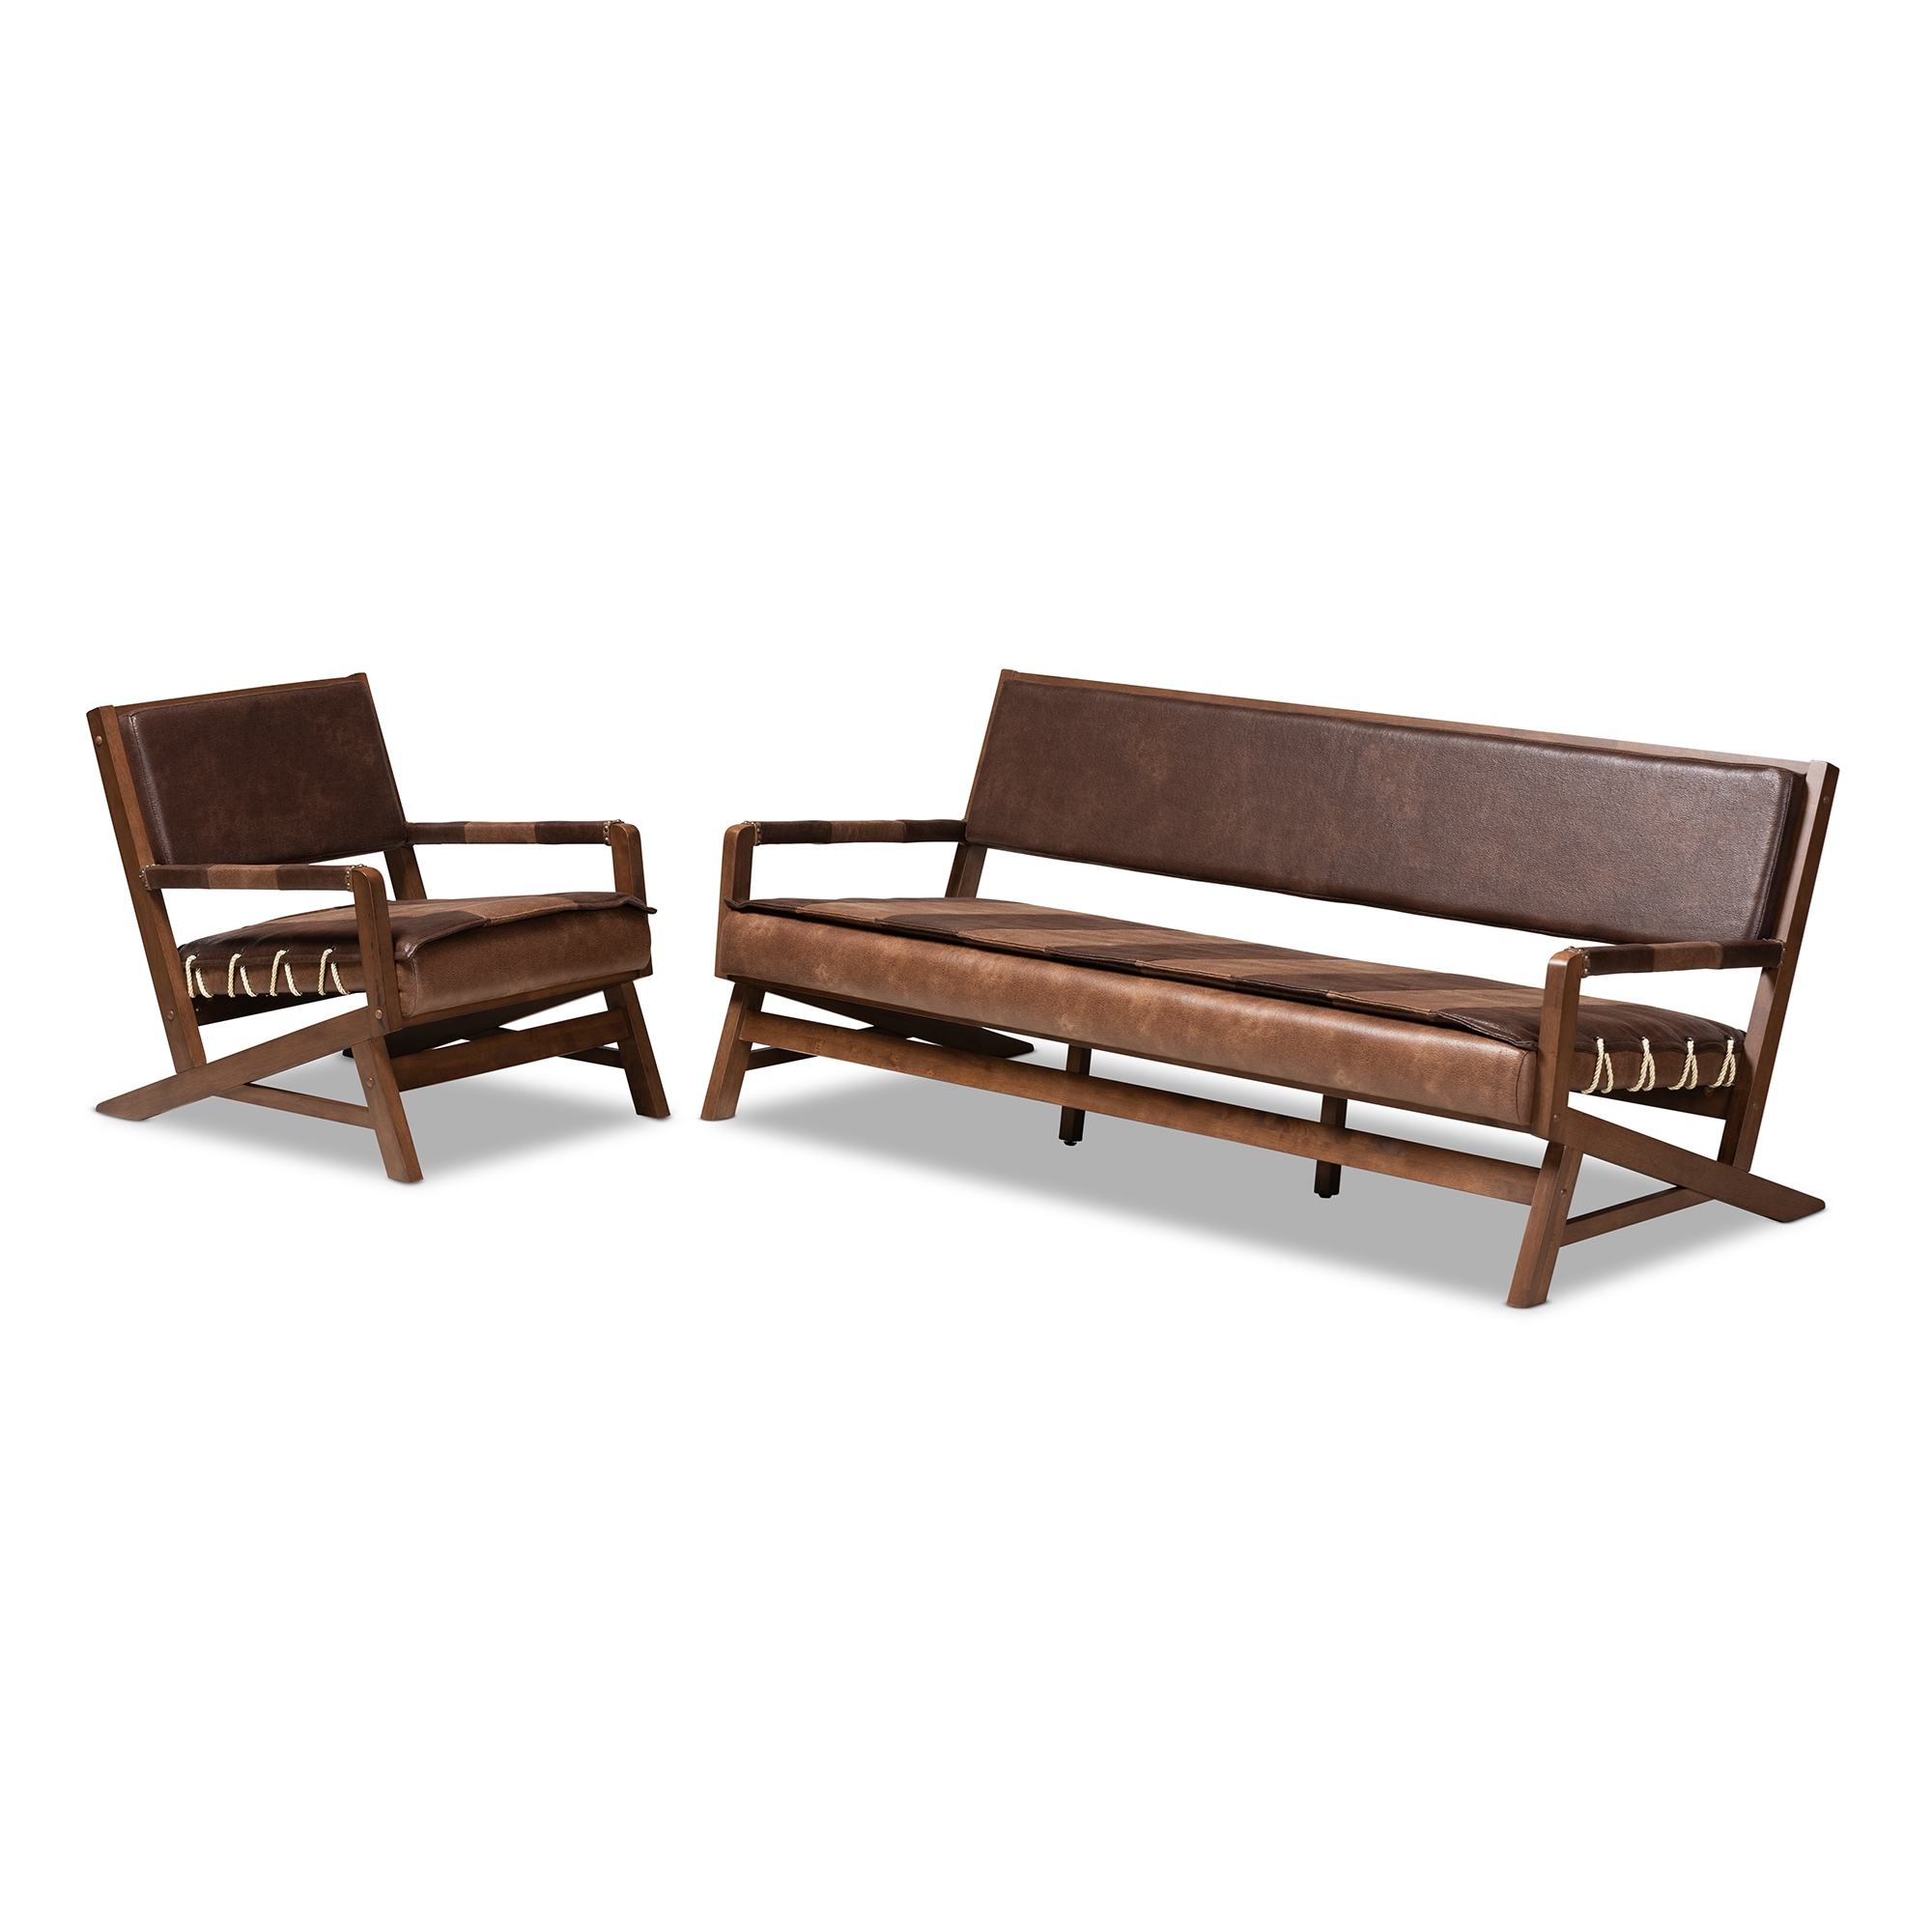 Faux Leather Living Room Set | Baxton Studio Rovelyn Rustic Brown Faux Leather Upholstered Walnut